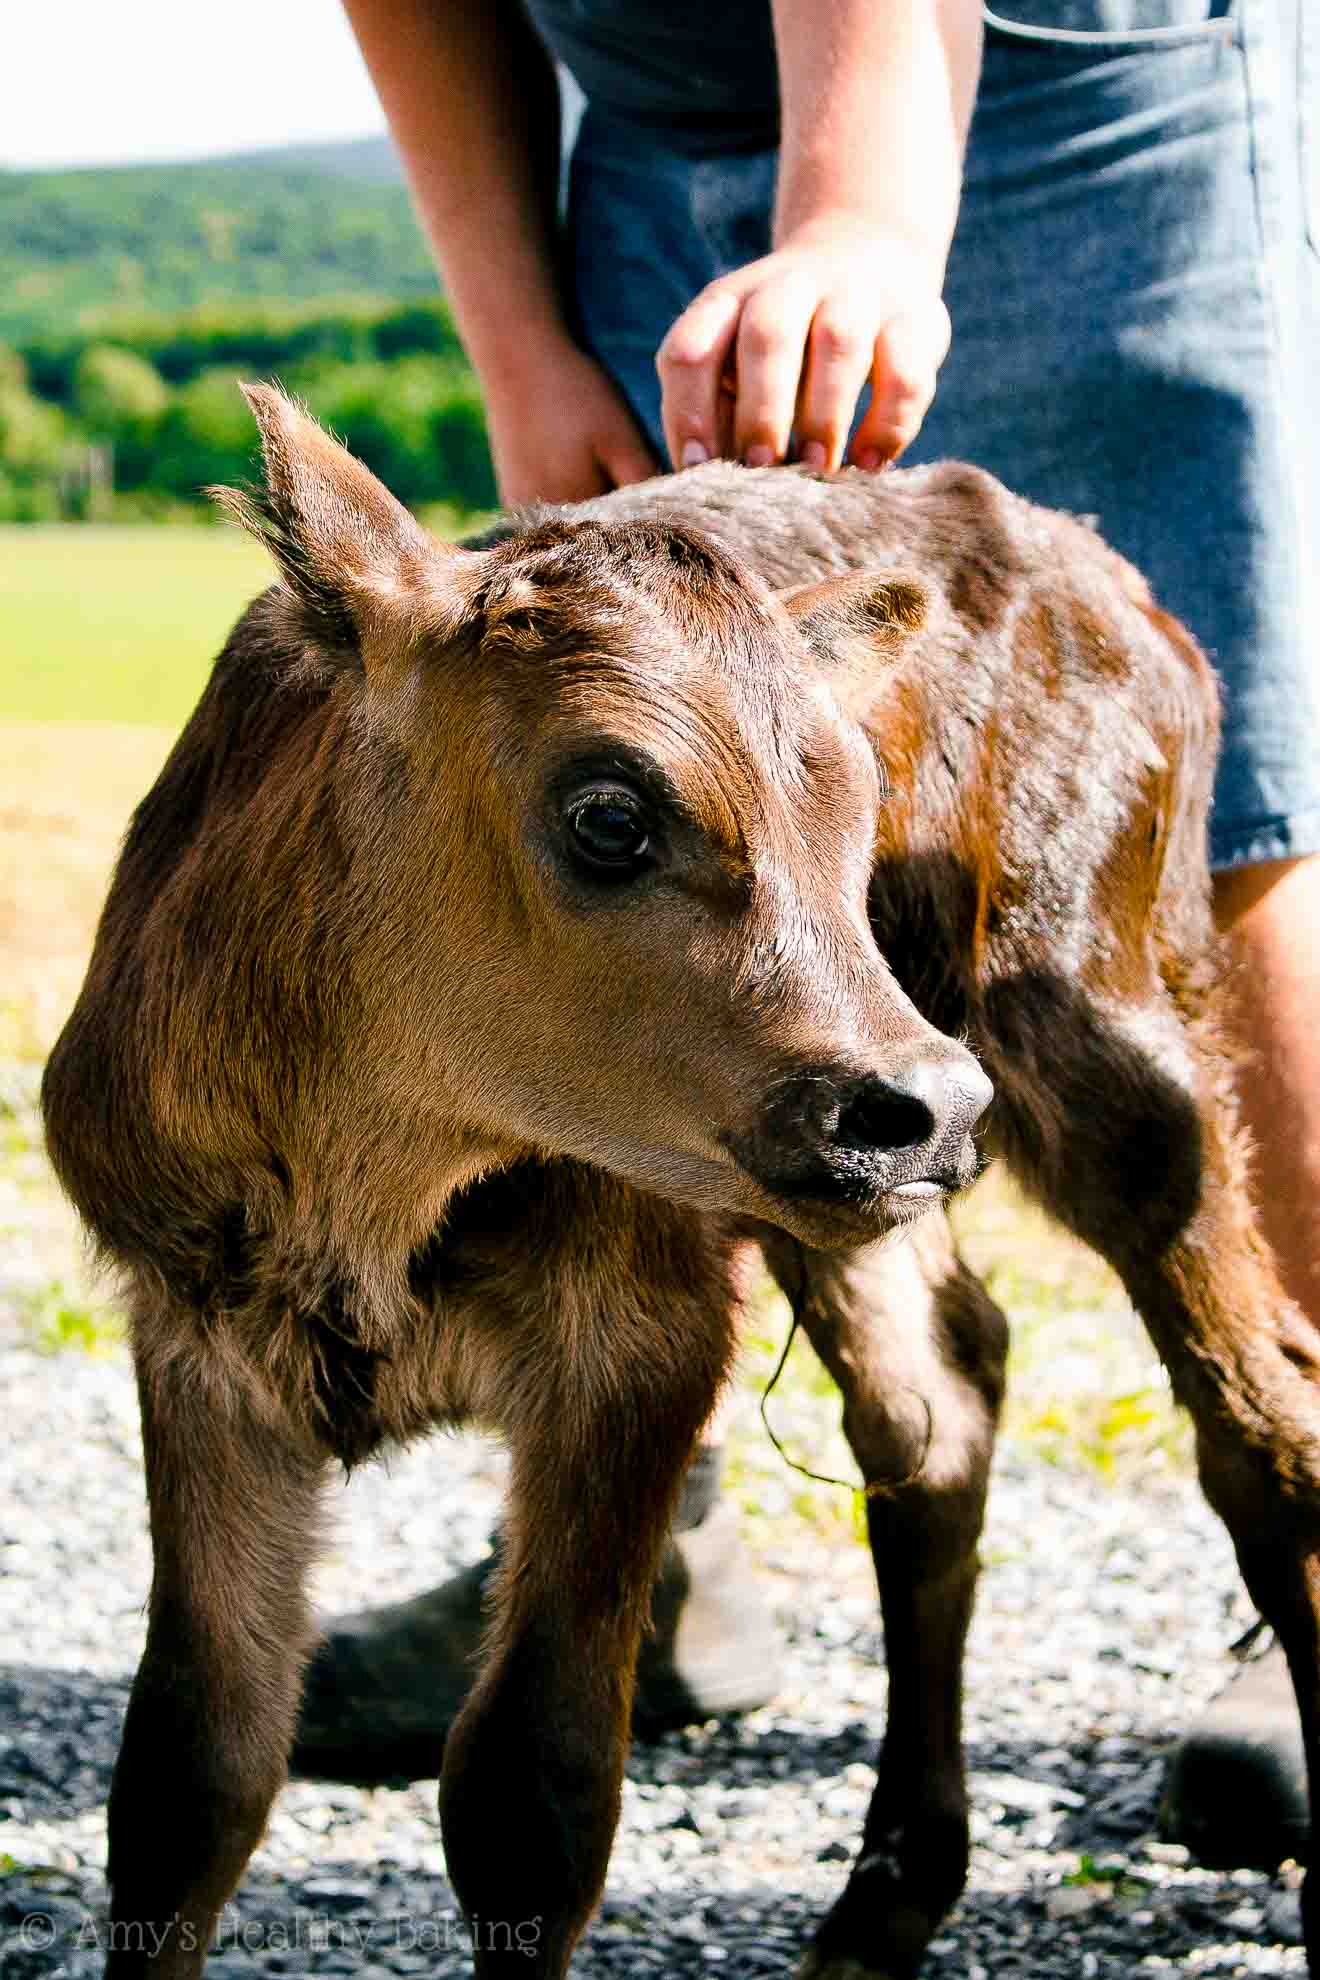 An hours-old calf at the High Meadows Organic Dairy Farm in New York